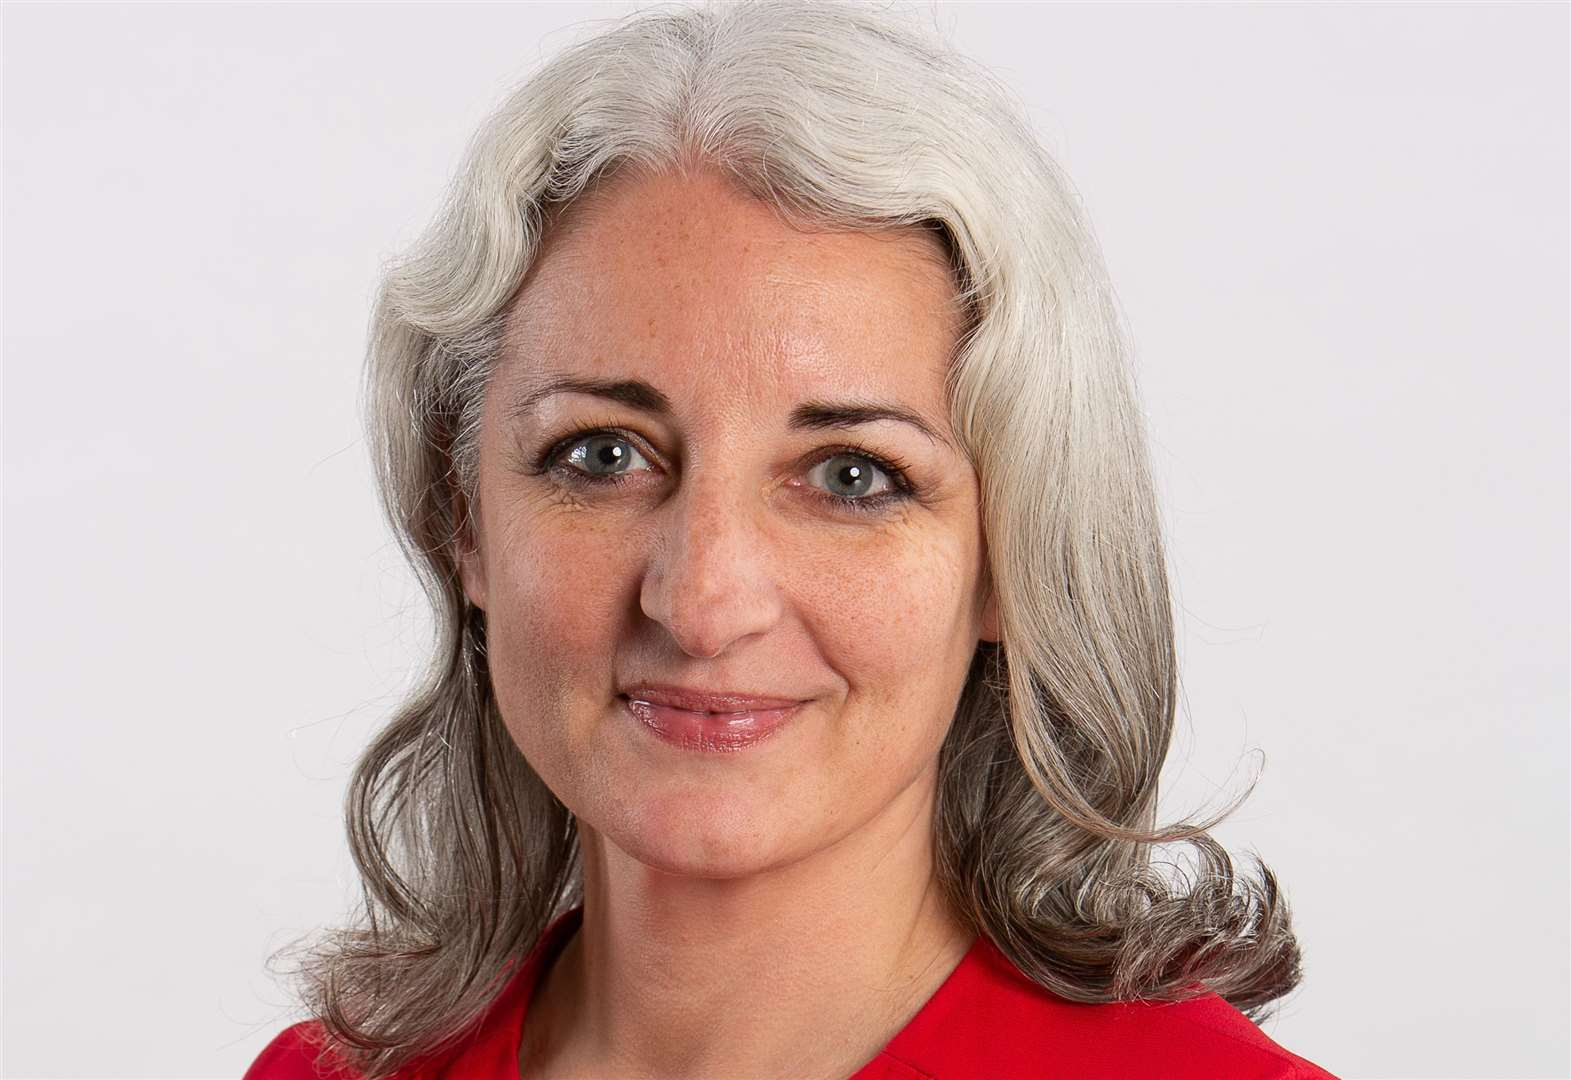 Labour candidate cleared in antisemitism row